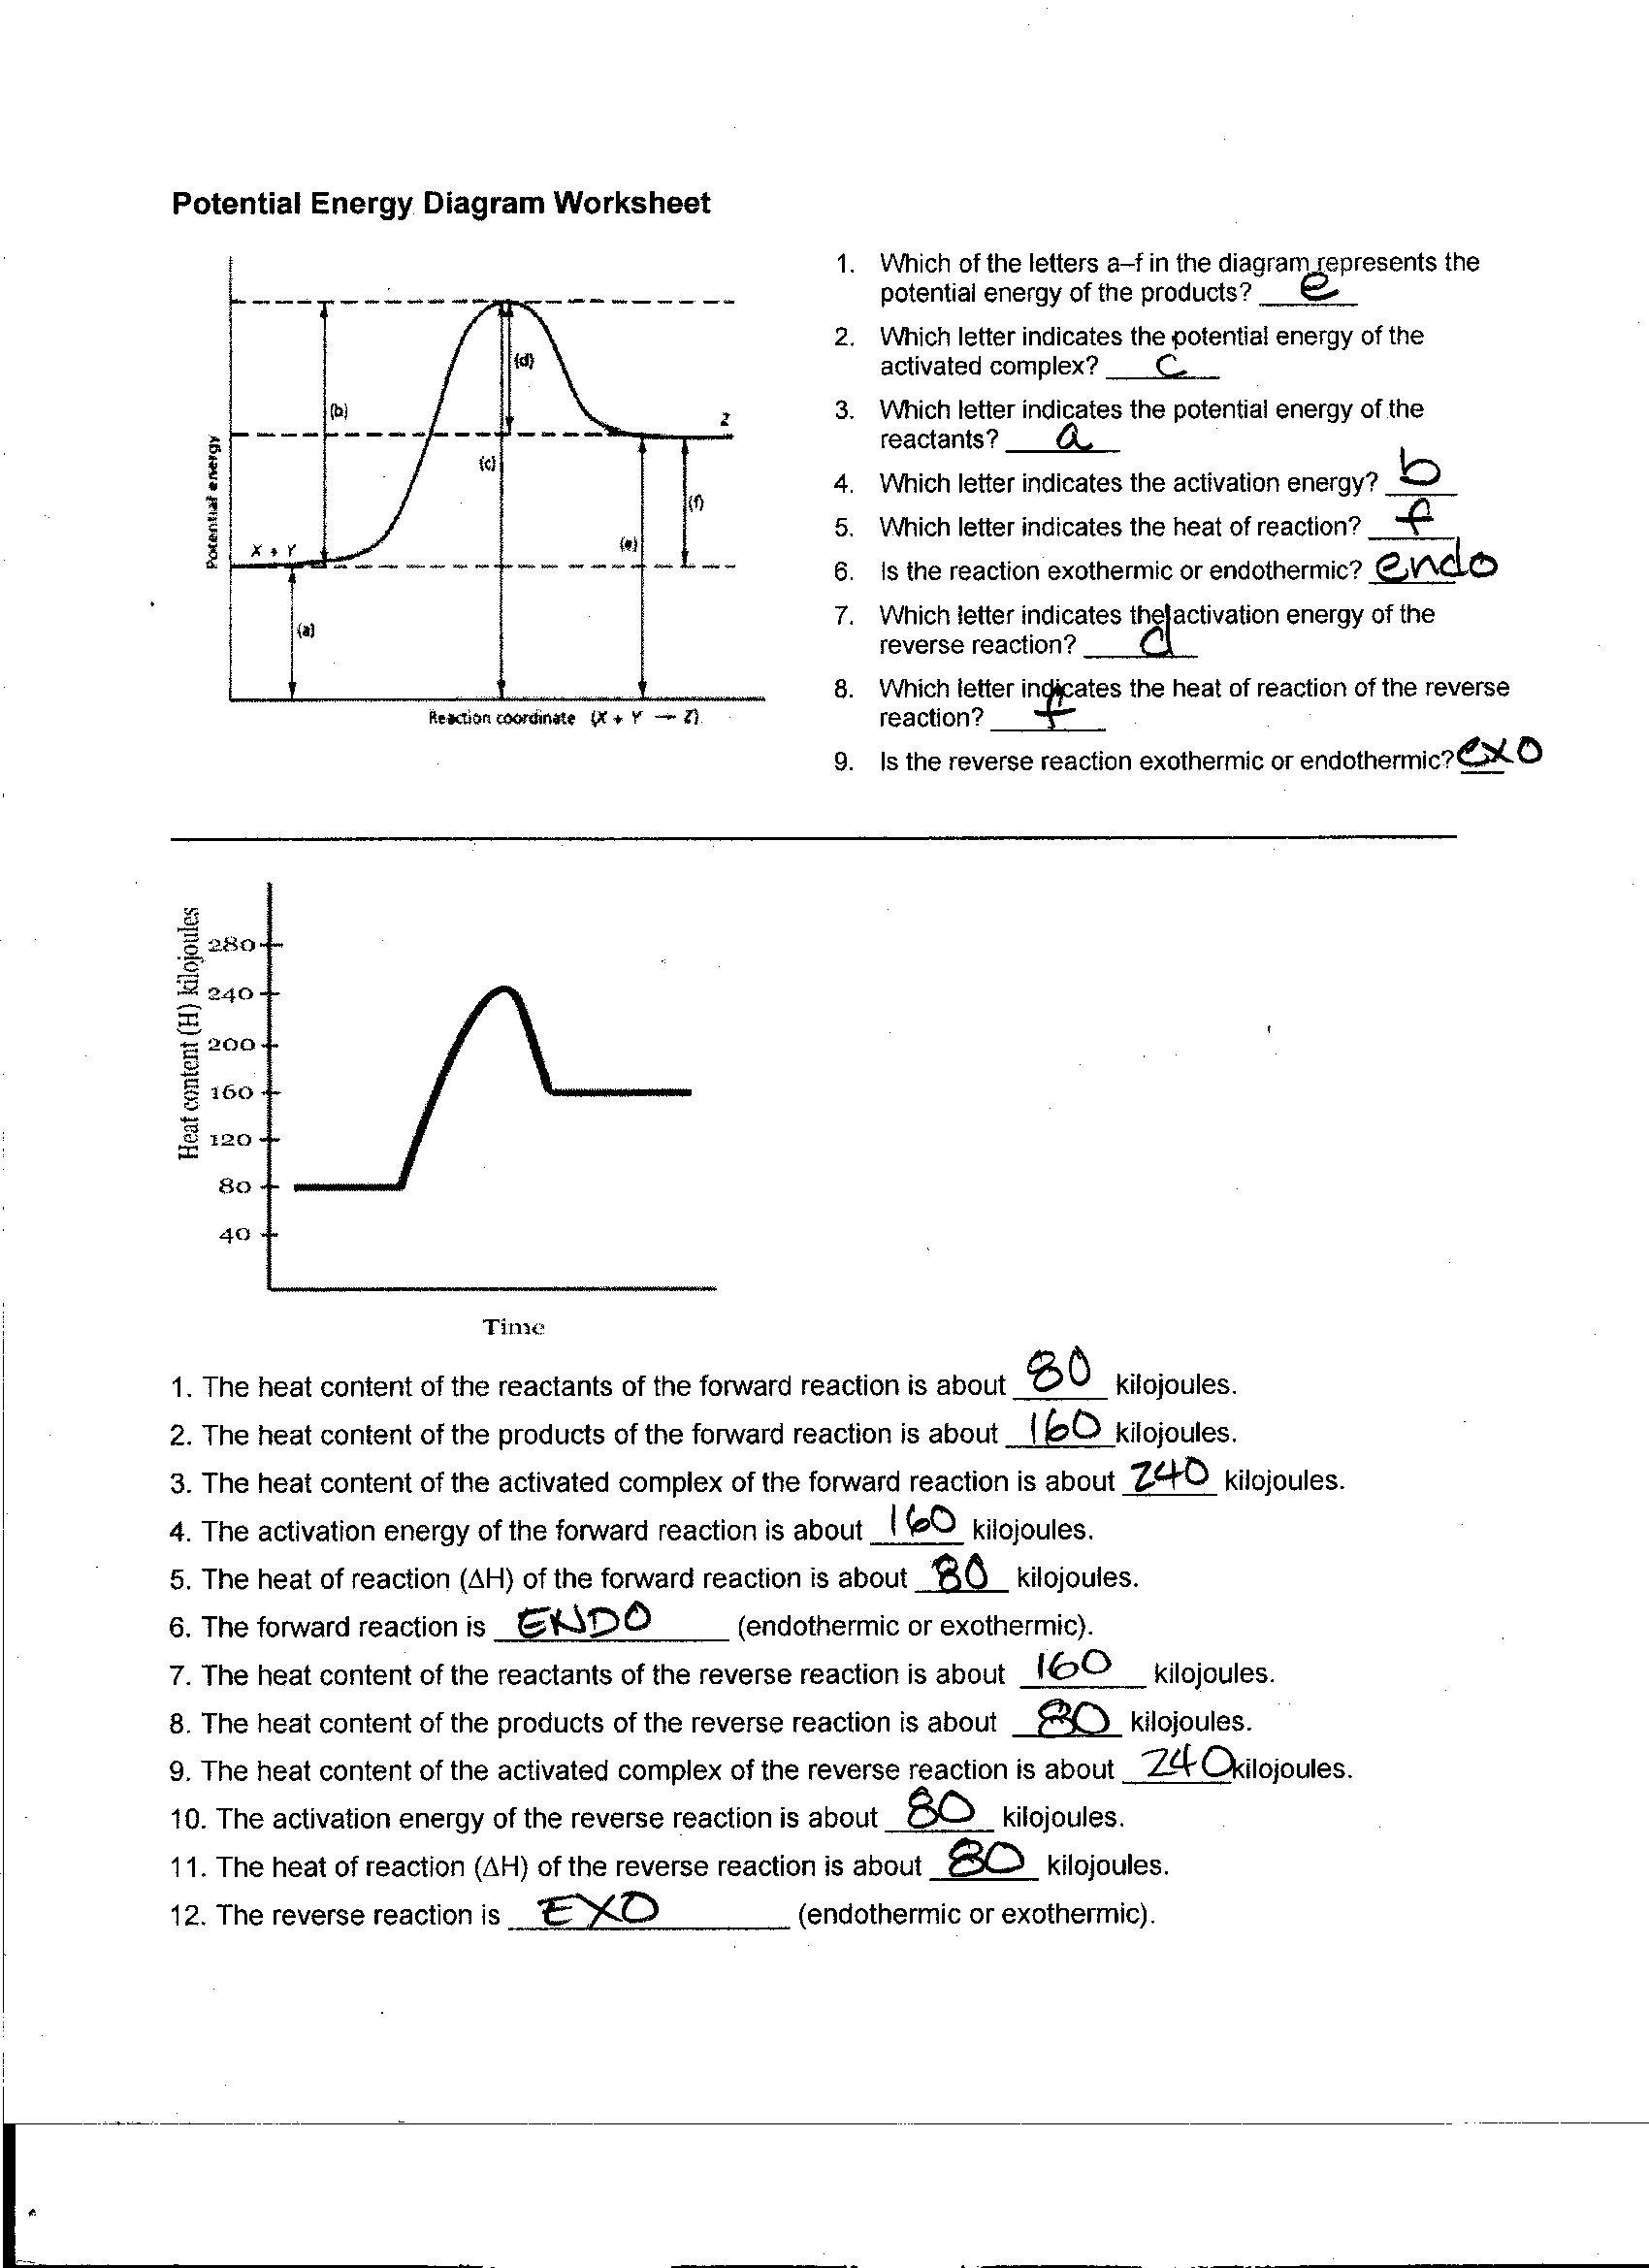 Foothill High School – Energy Diagram Worksheet